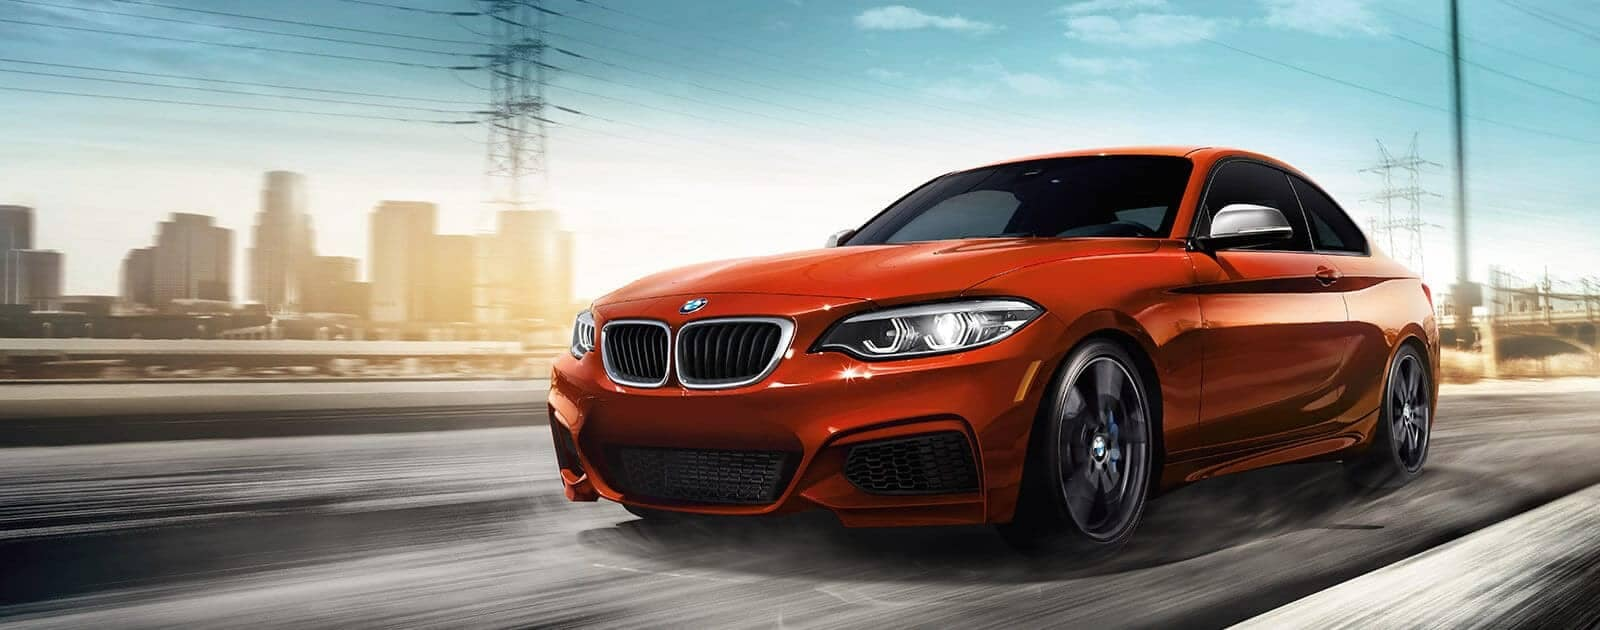 Red BMW 2 series